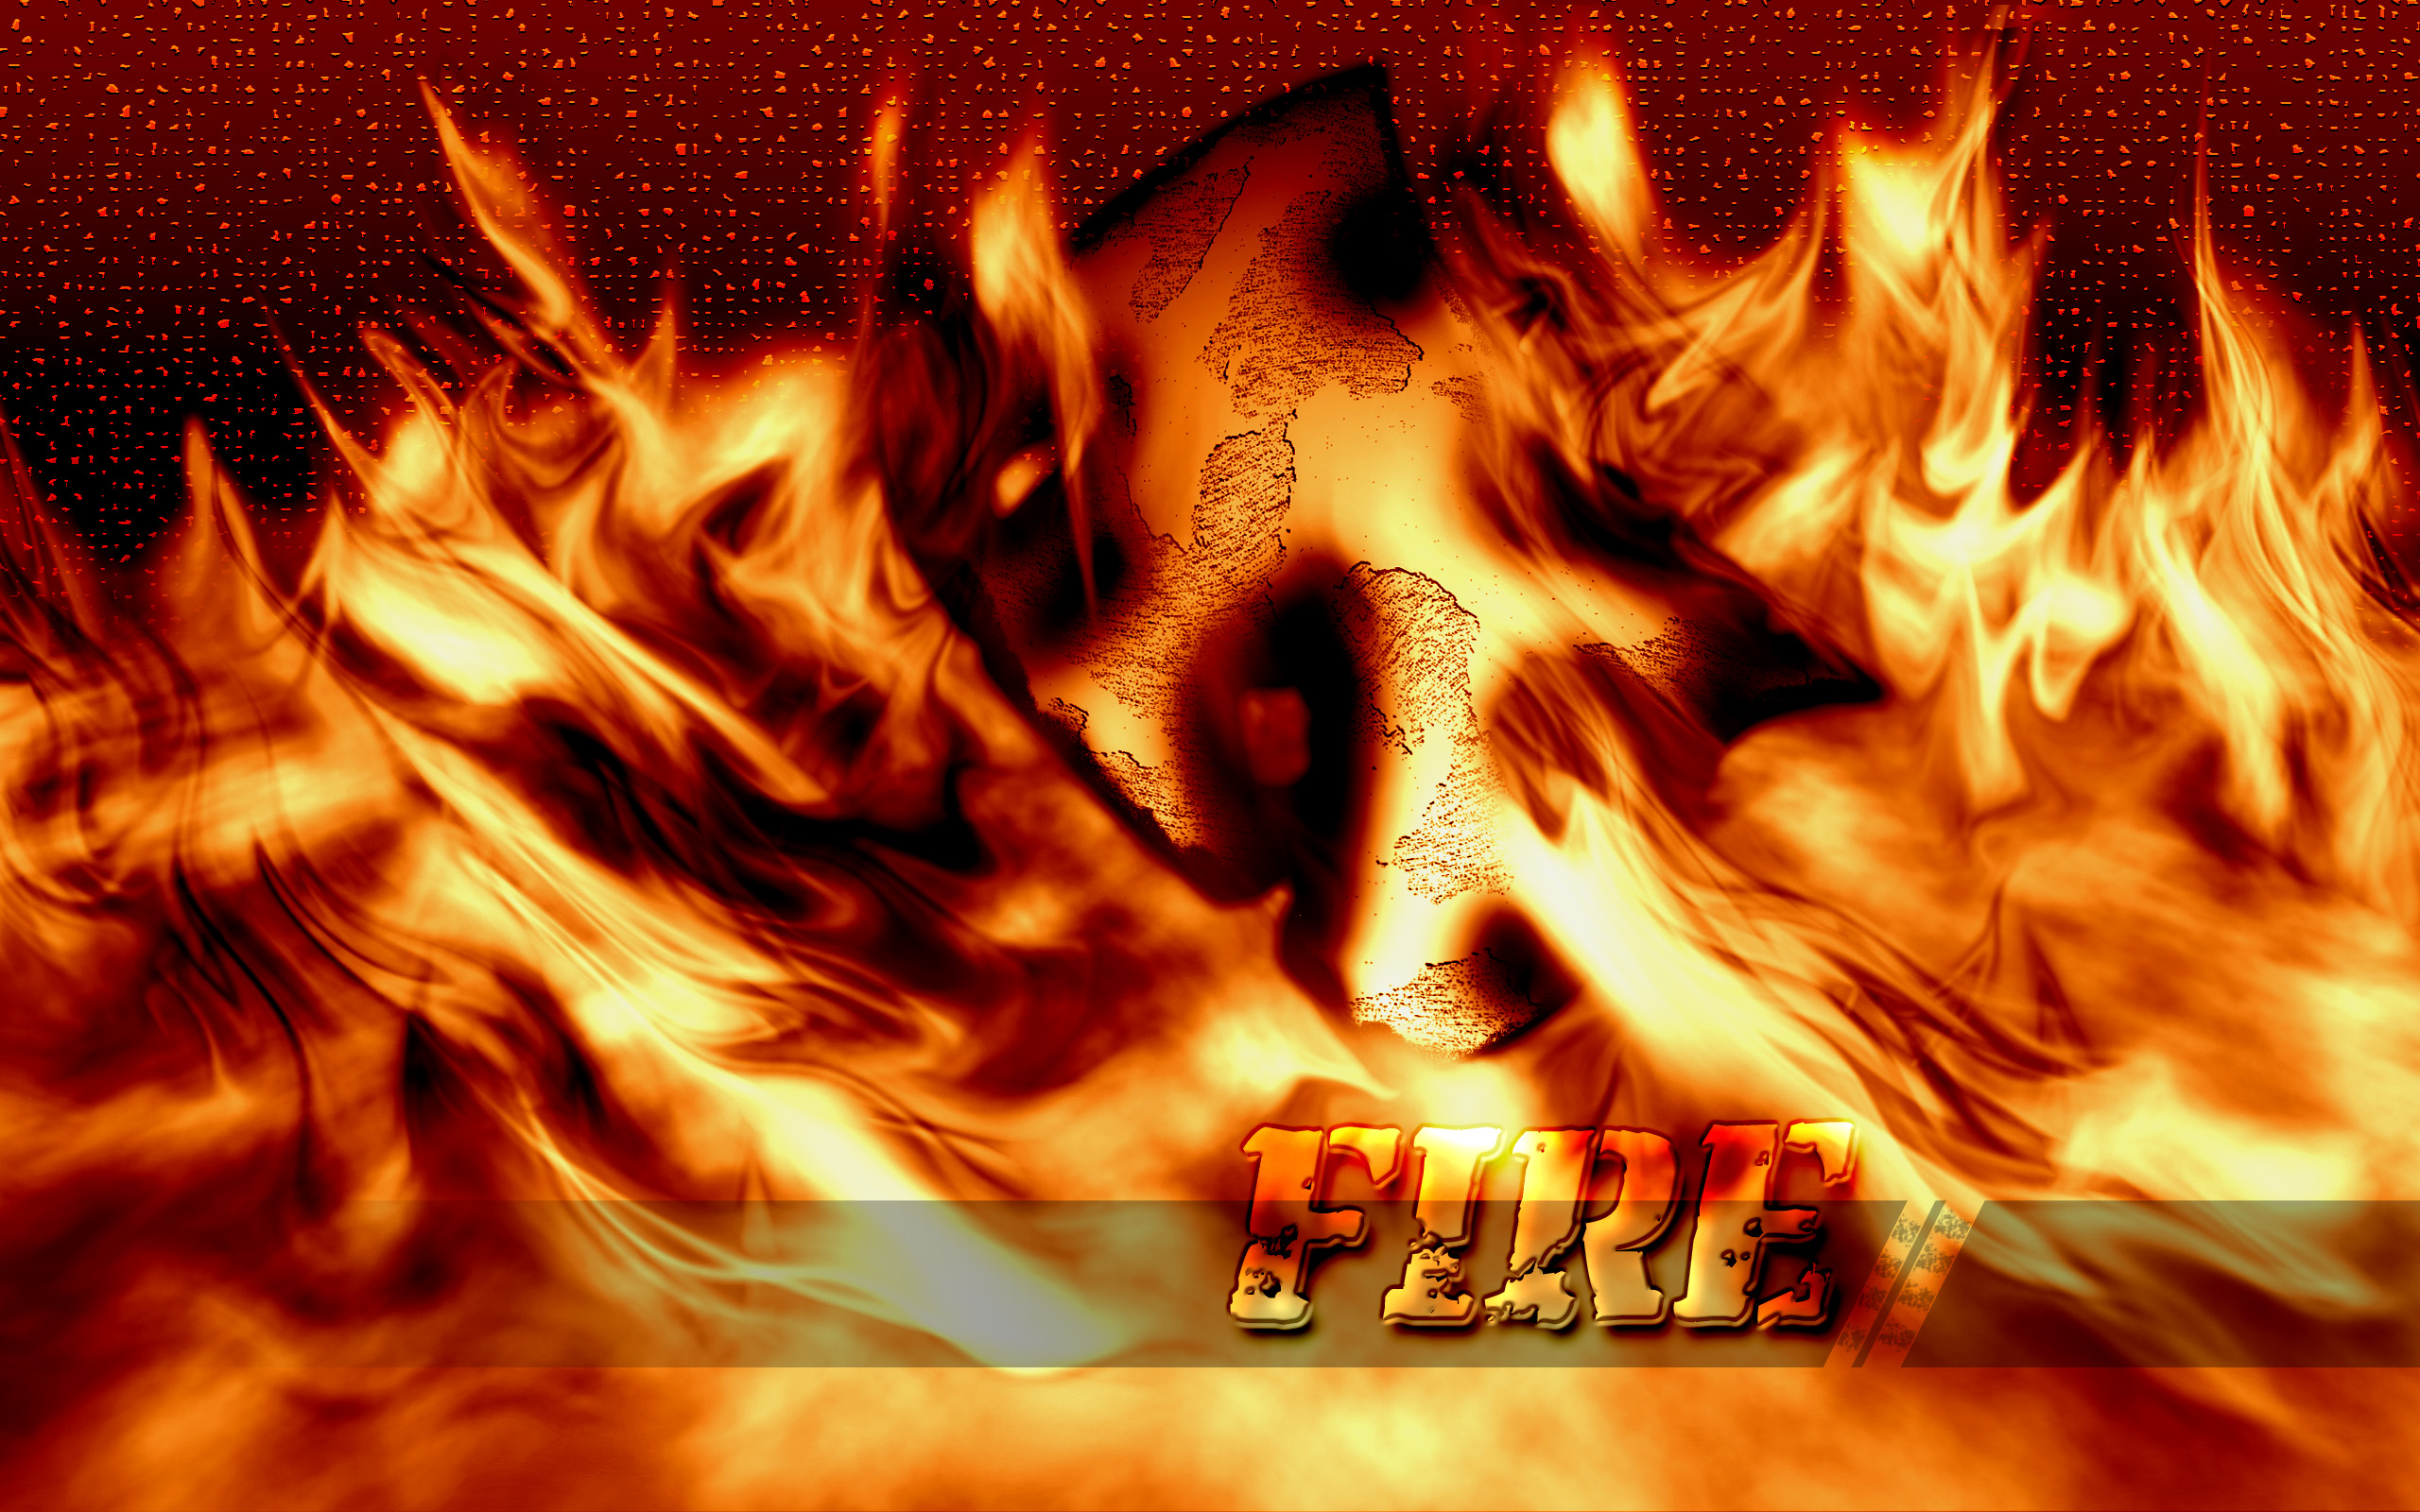 2560x1600 Fire Full HD desktop PC and Mac wallpaper 2560x1600